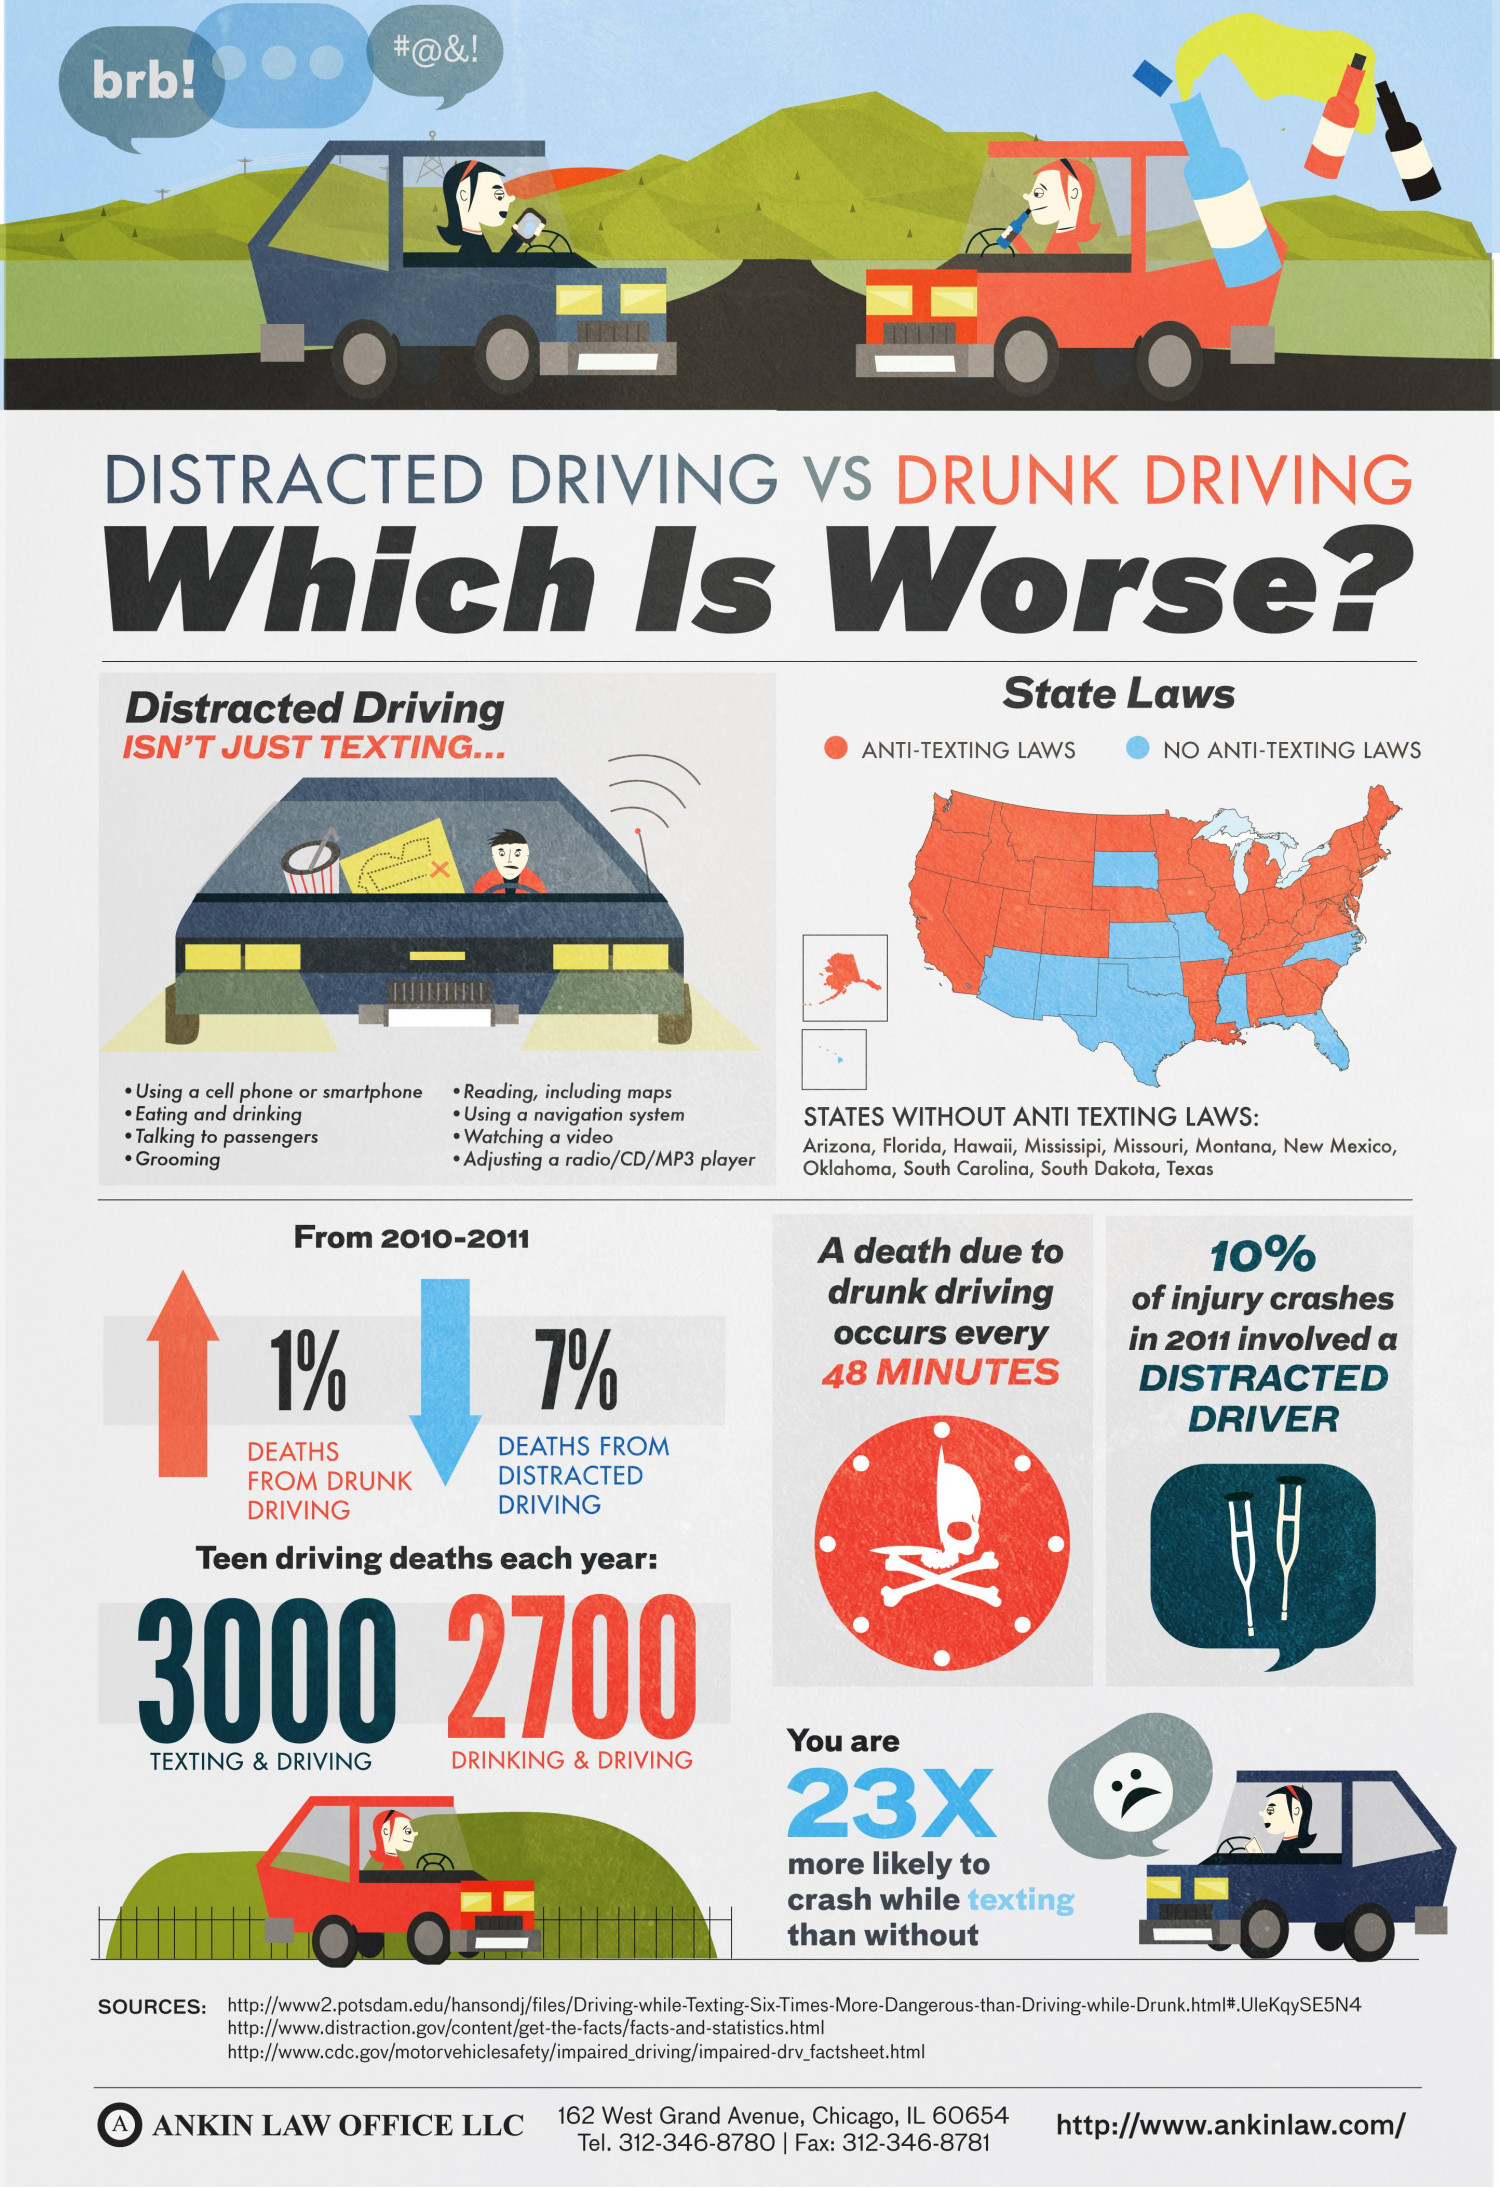 Distracted Driving VS Drunk Driving: Which Is Worse? Infographic